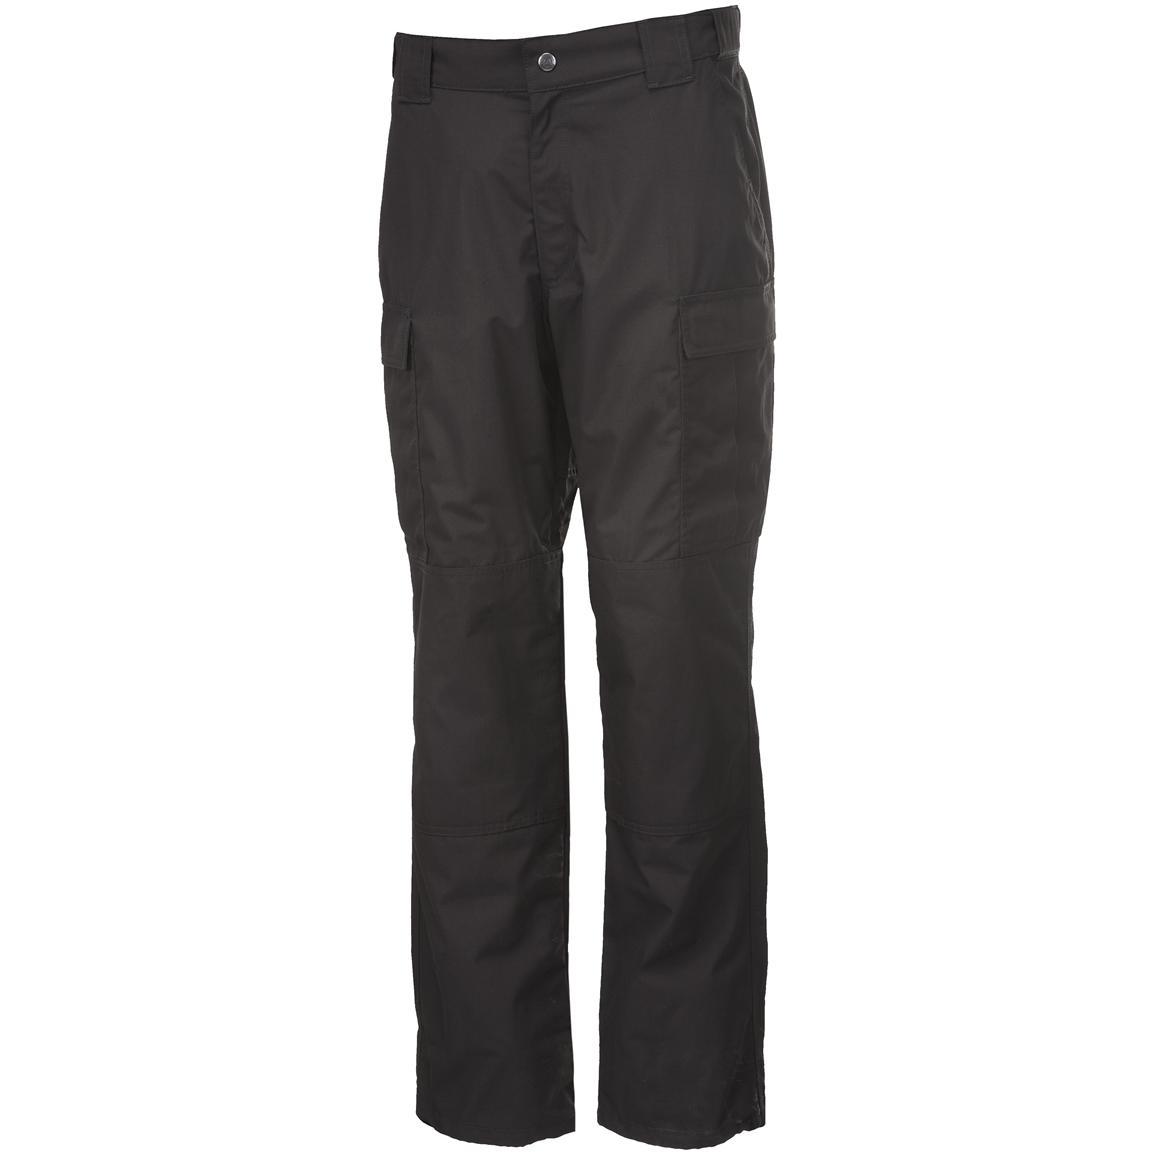 Men's 5.11 Tactical® Taclite™ TDU® Pants, Black